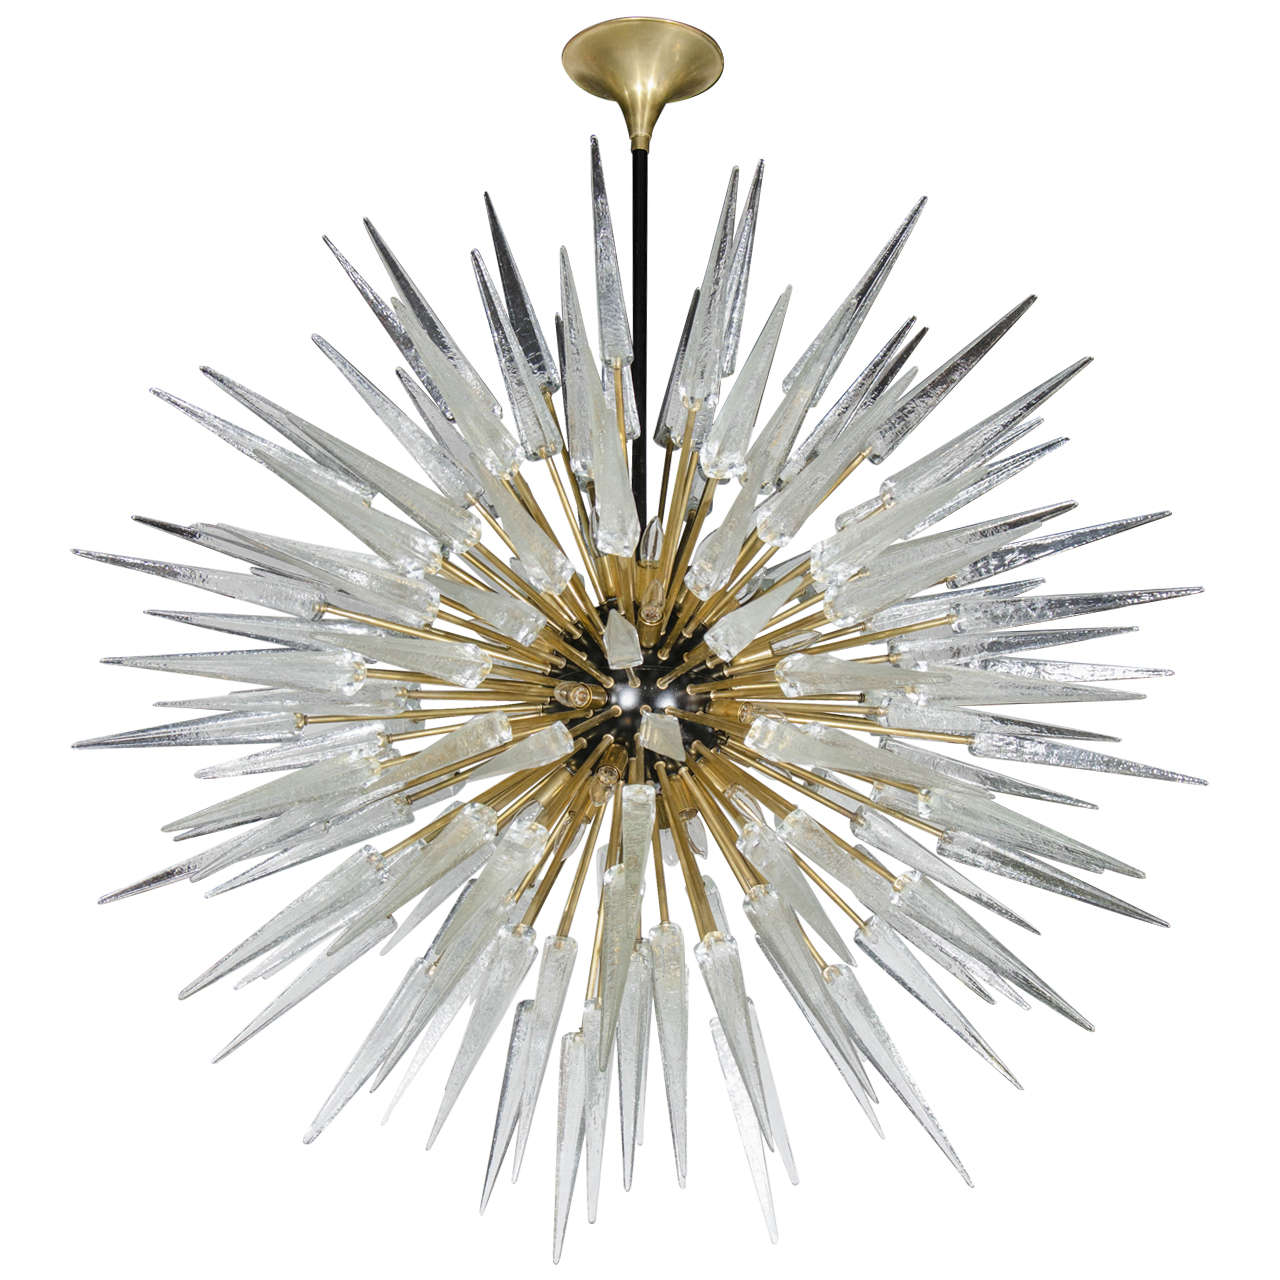 Impressive and monumental murano glass spiked starburst chandelier impressive and monumental murano glass spiked starburst chandelier for sale mozeypictures Images